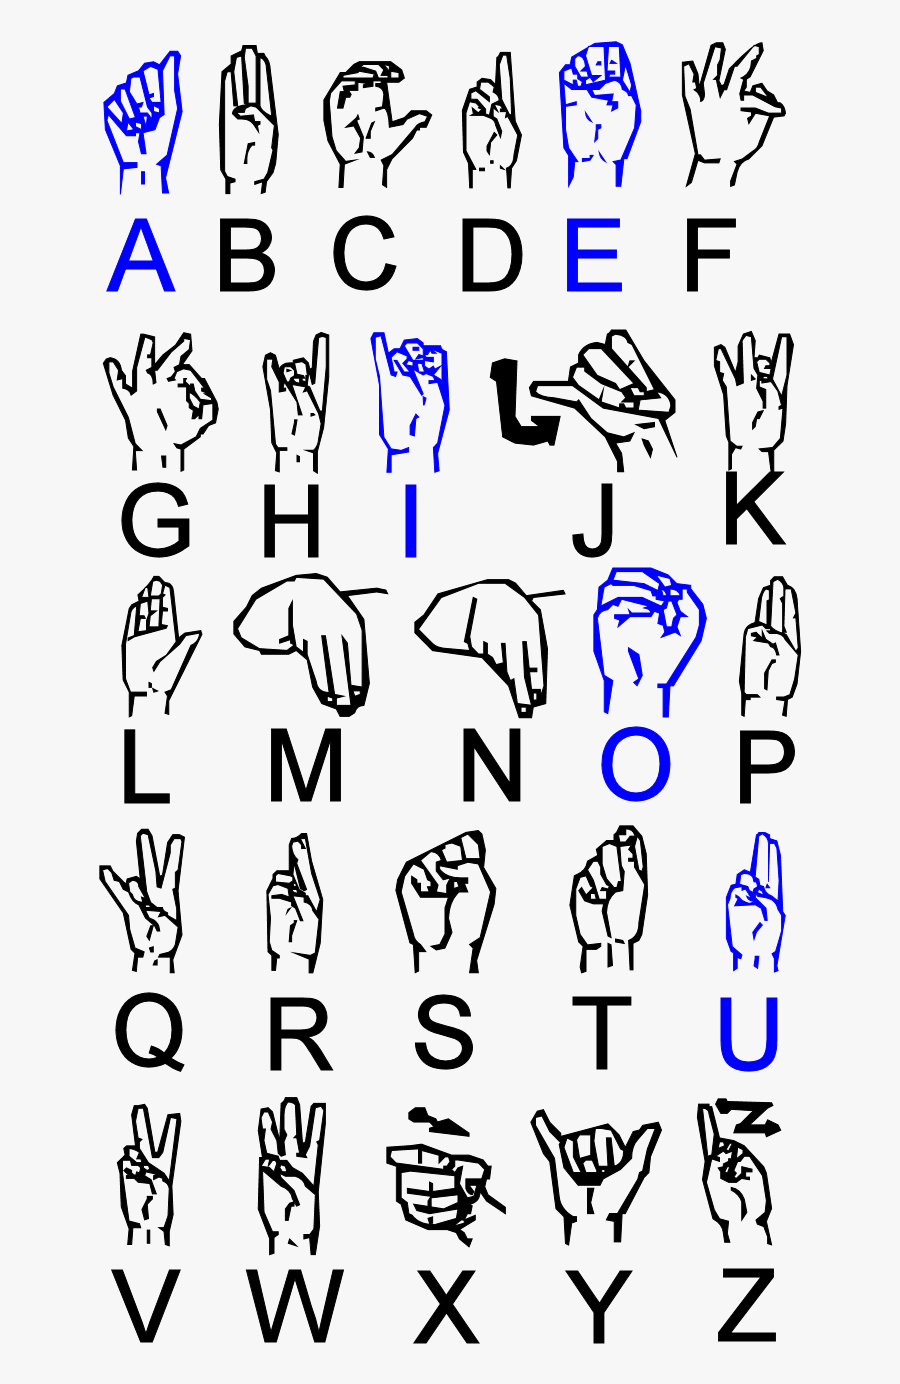 Number 4 Clipart Asl - X In Irish Sign Language, Transparent Clipart